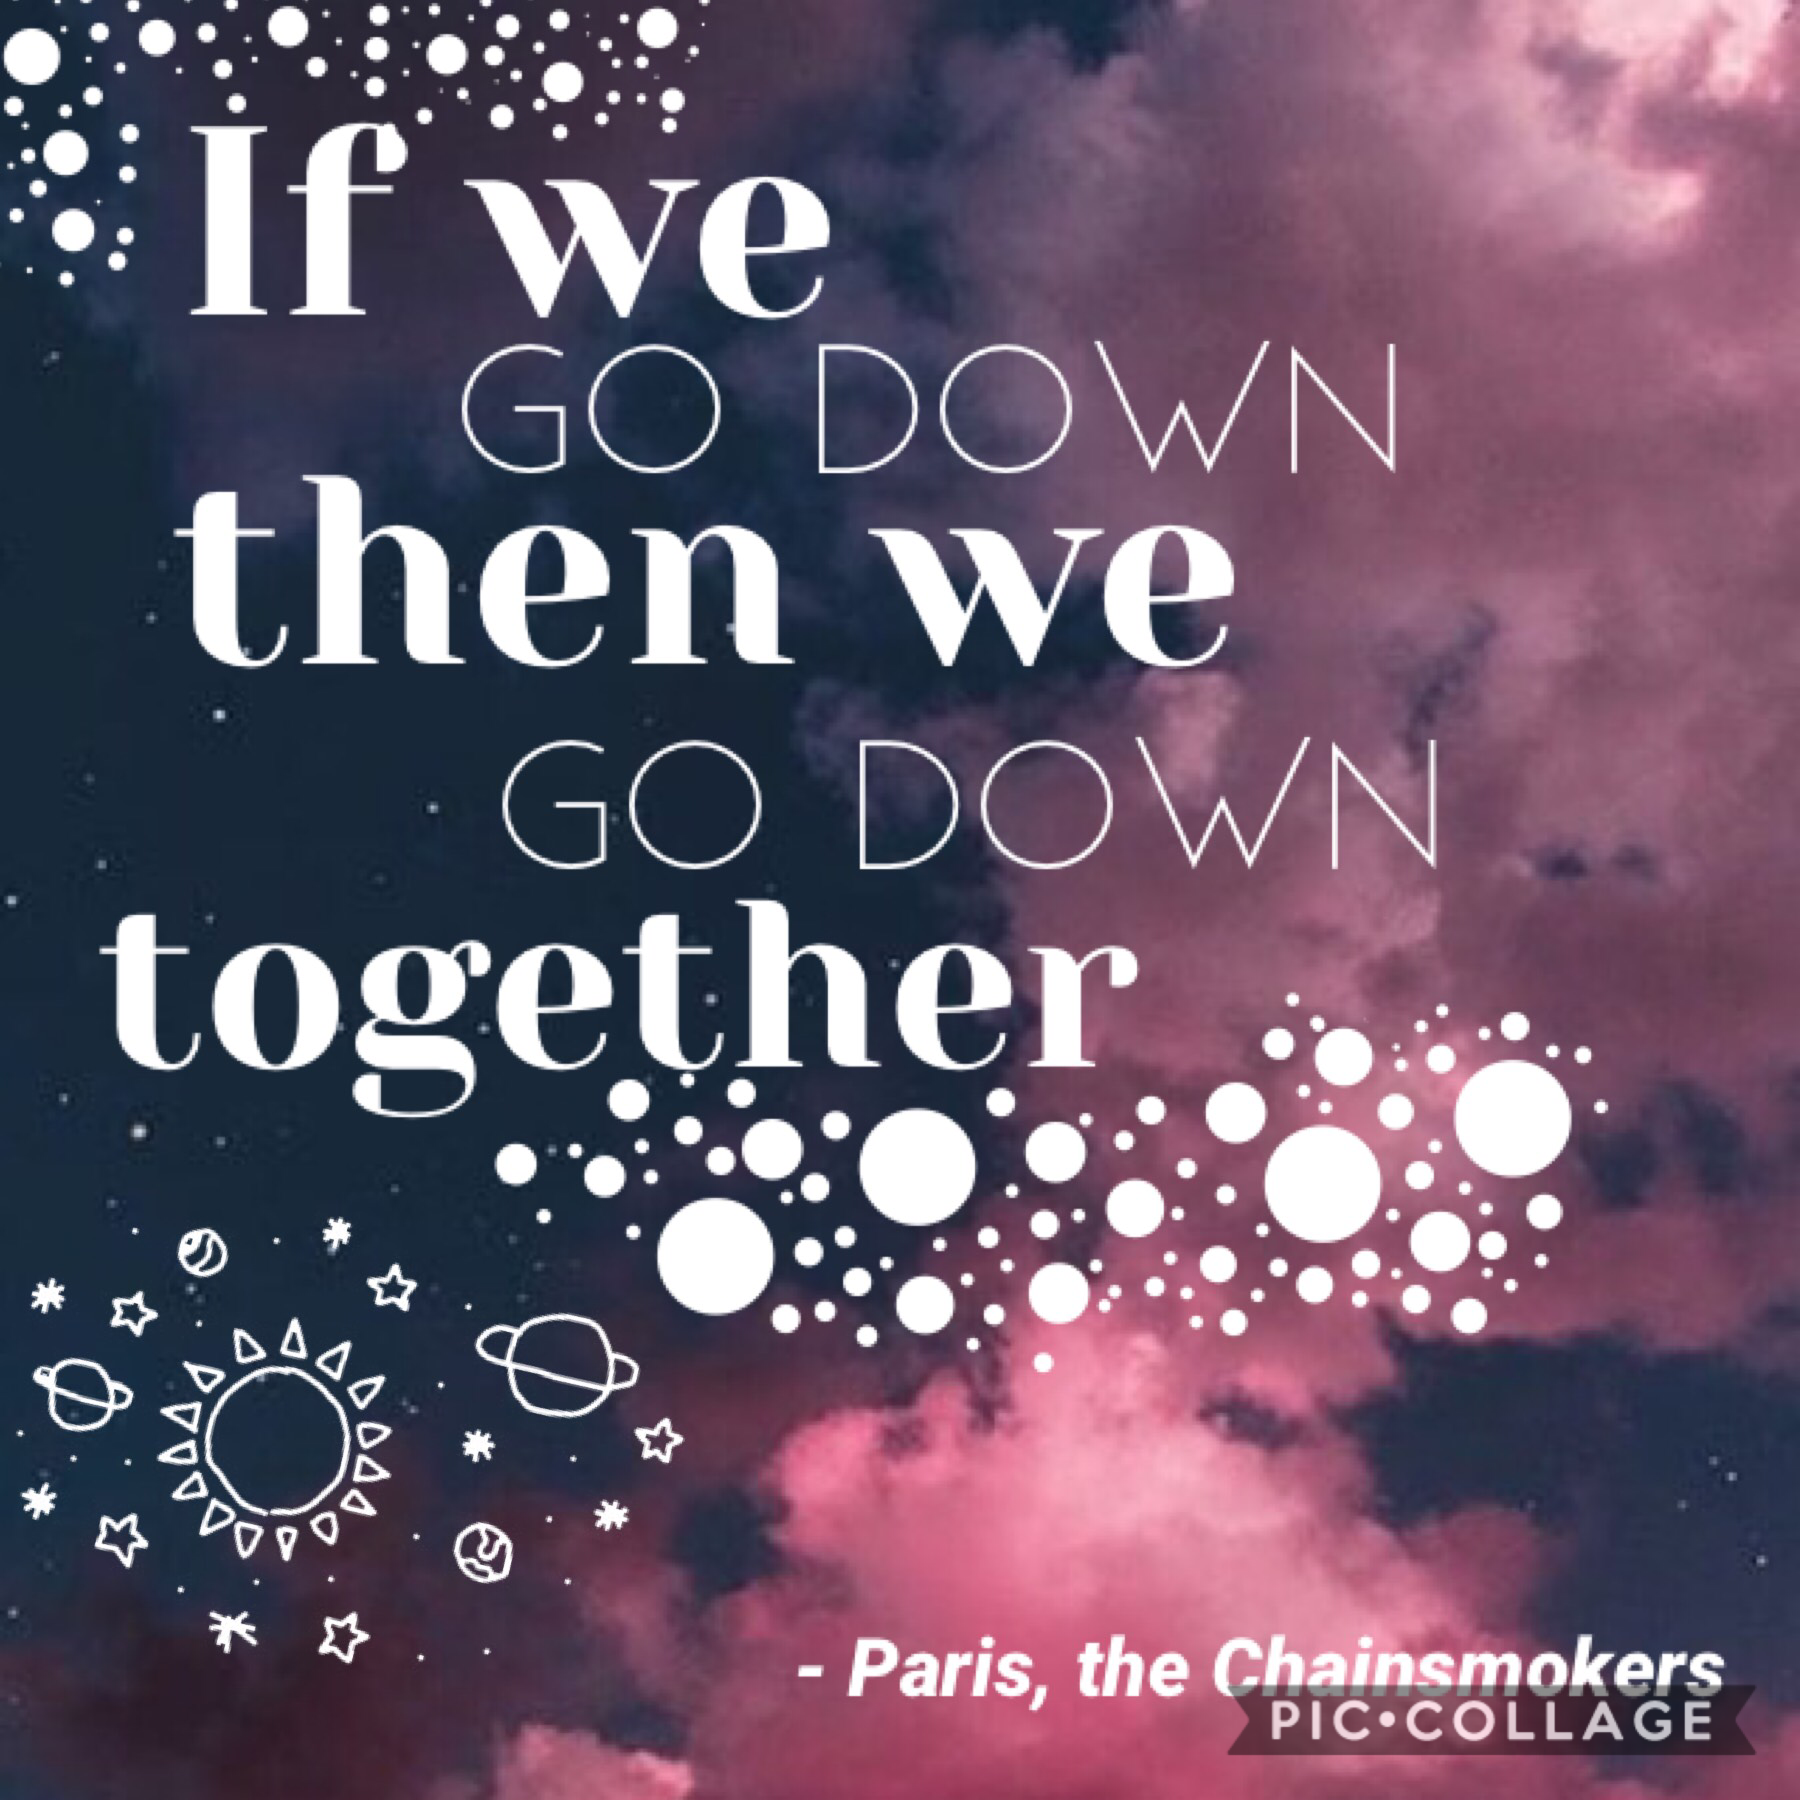 🎆If we go down, then we go down together🎆